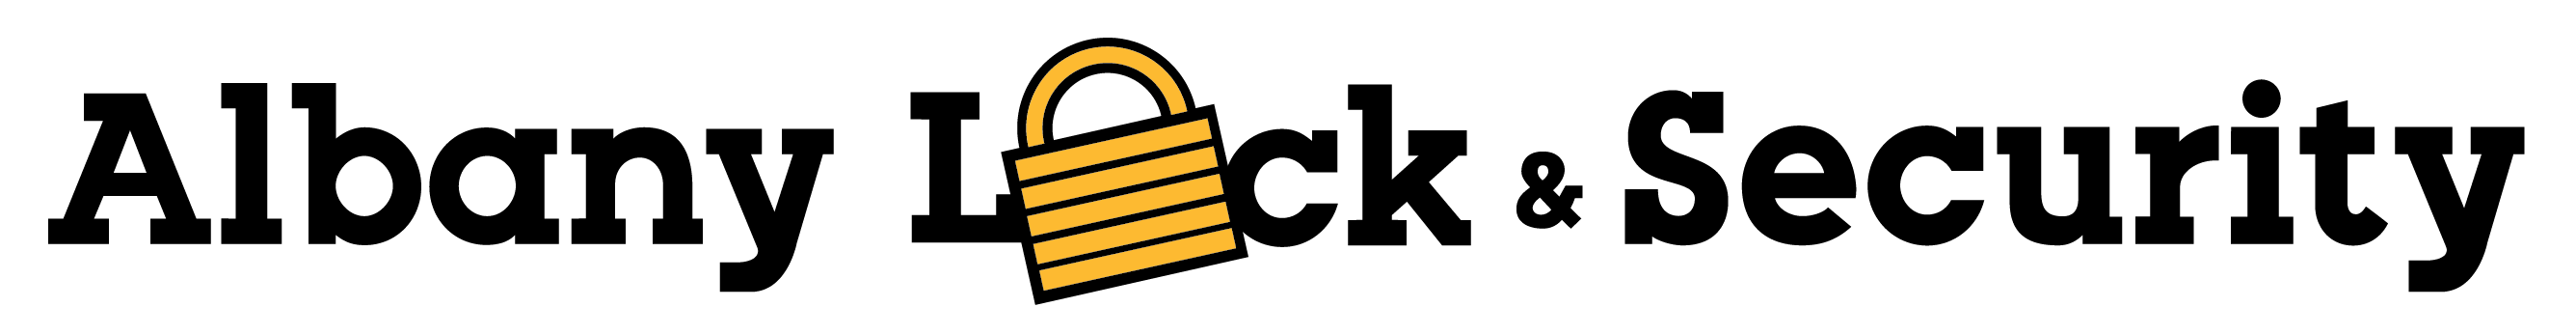 Albany Lock & Security - Longform Logo